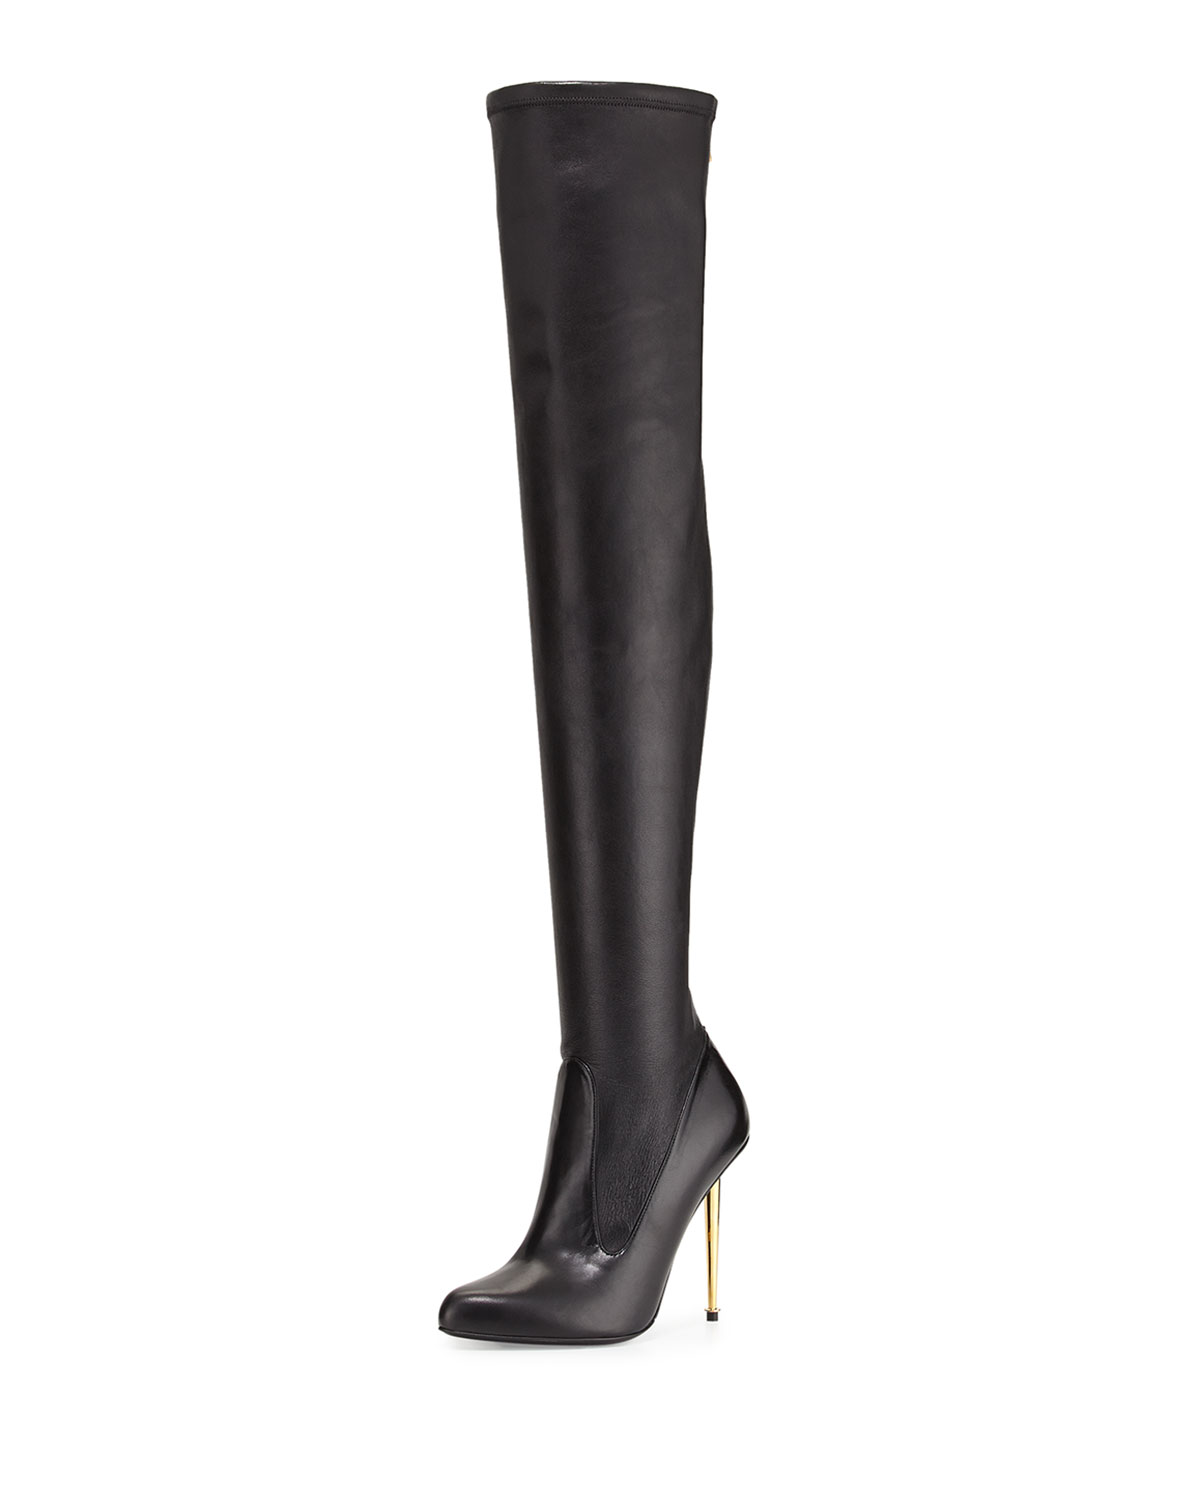 bfc3d408a6 Over-the-Knee Napa Stretch Boot, Black